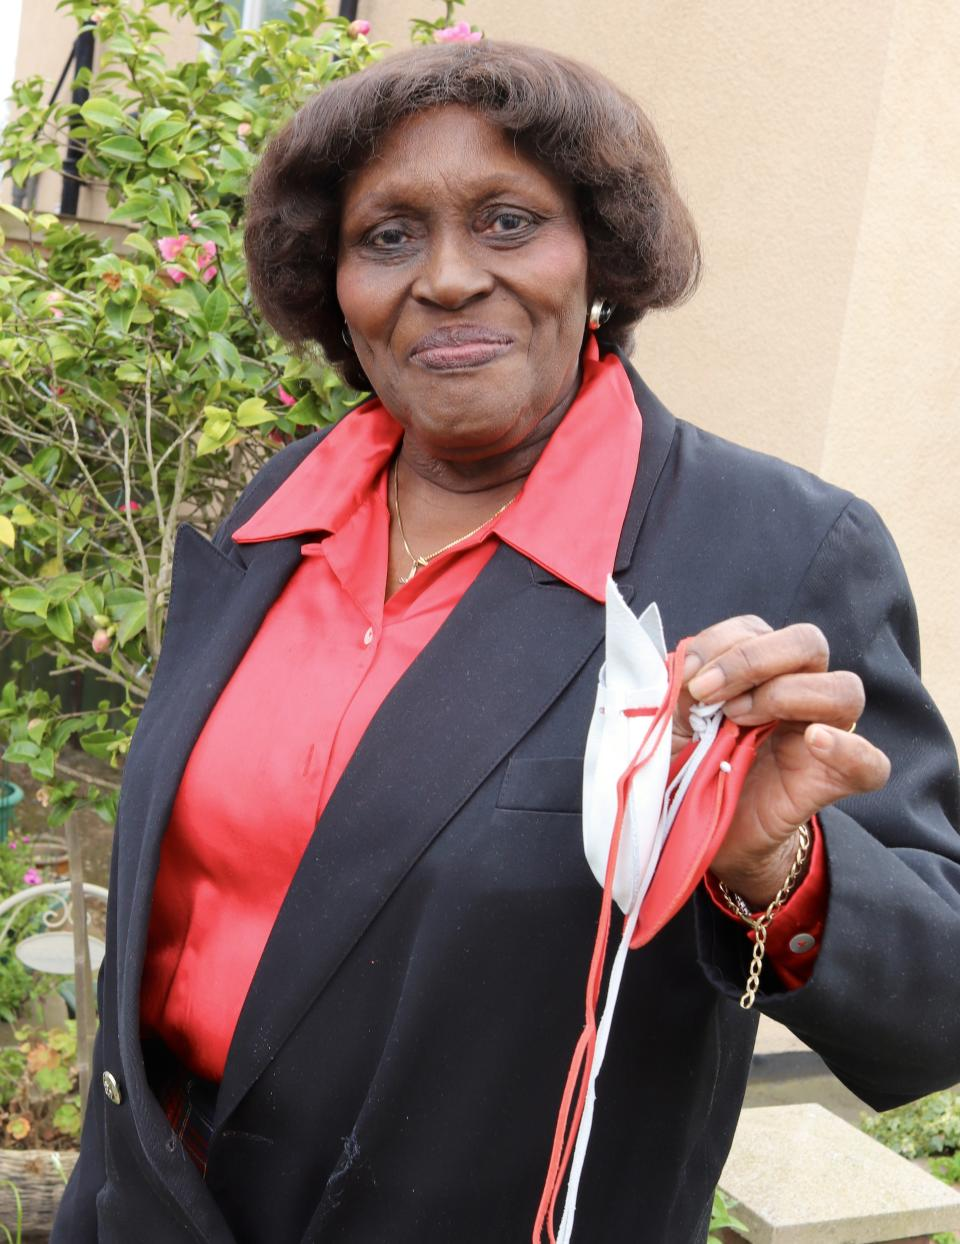 Agnes Slocombe has been a faithful and active member of St John's Church West Hendon for many decades, since she first came to the UK from Barbados as a young woman, the palace said. (Buckingham Palace)